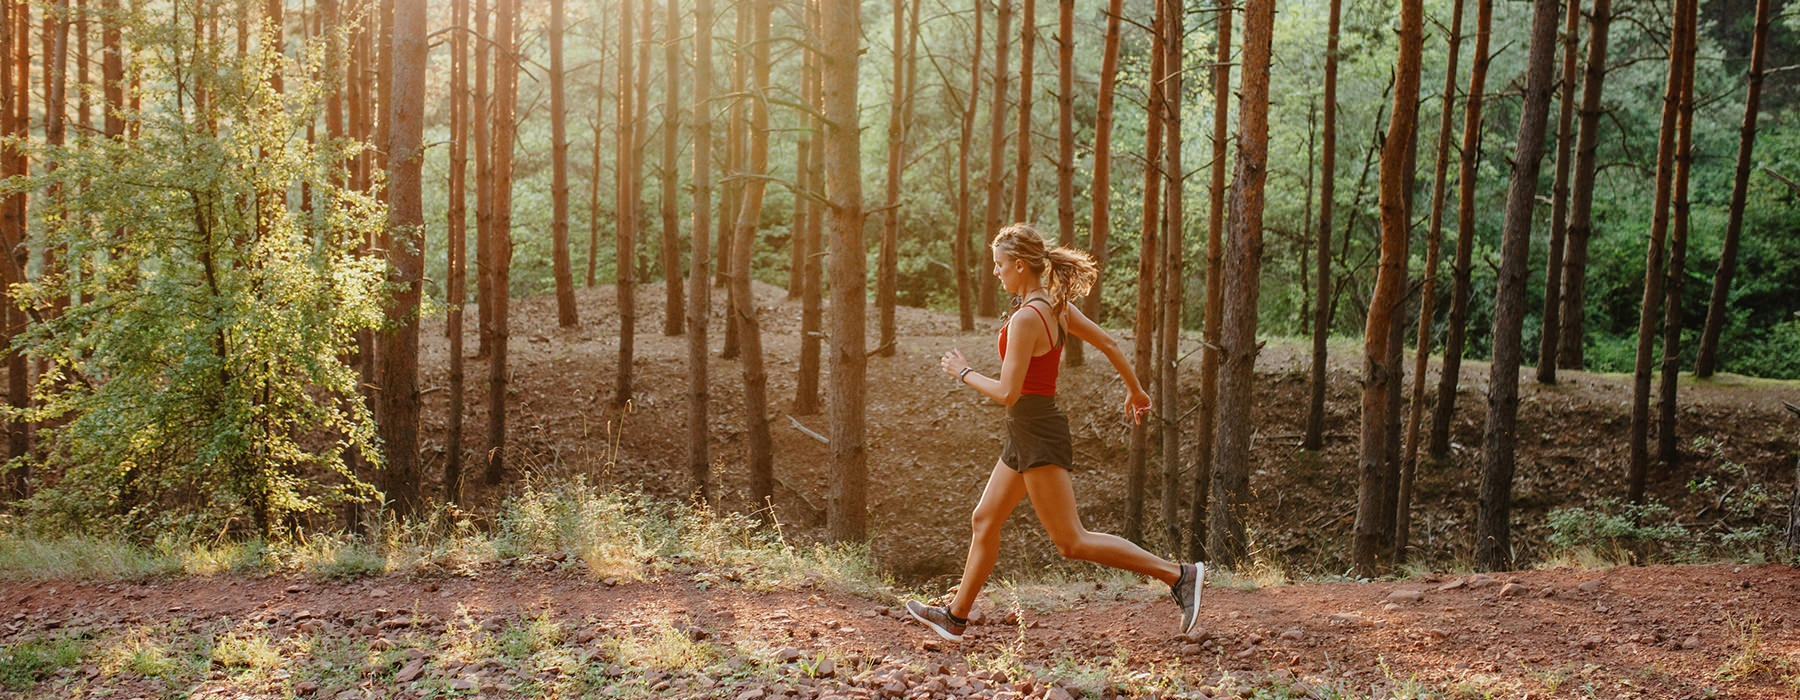 A woman jogging through the woods in the sunset.